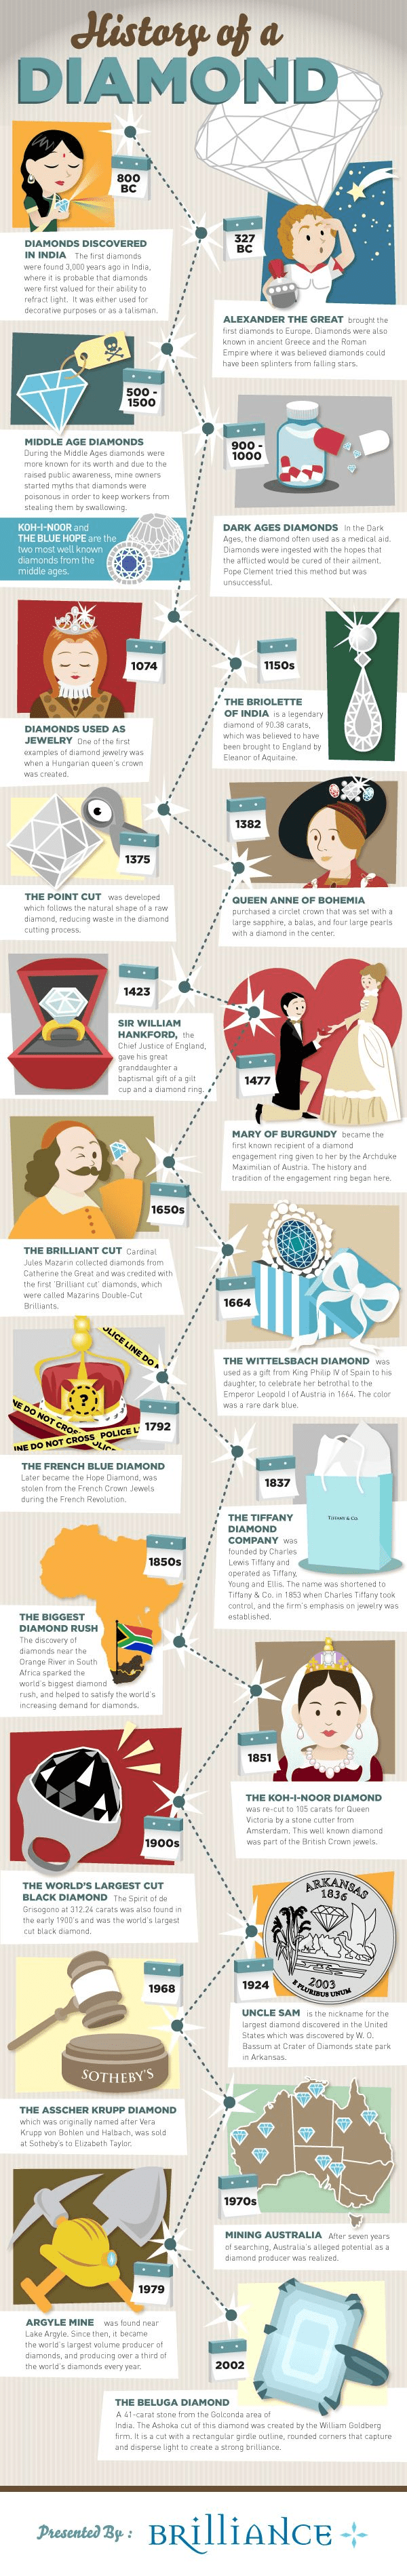 History Of A Diamond